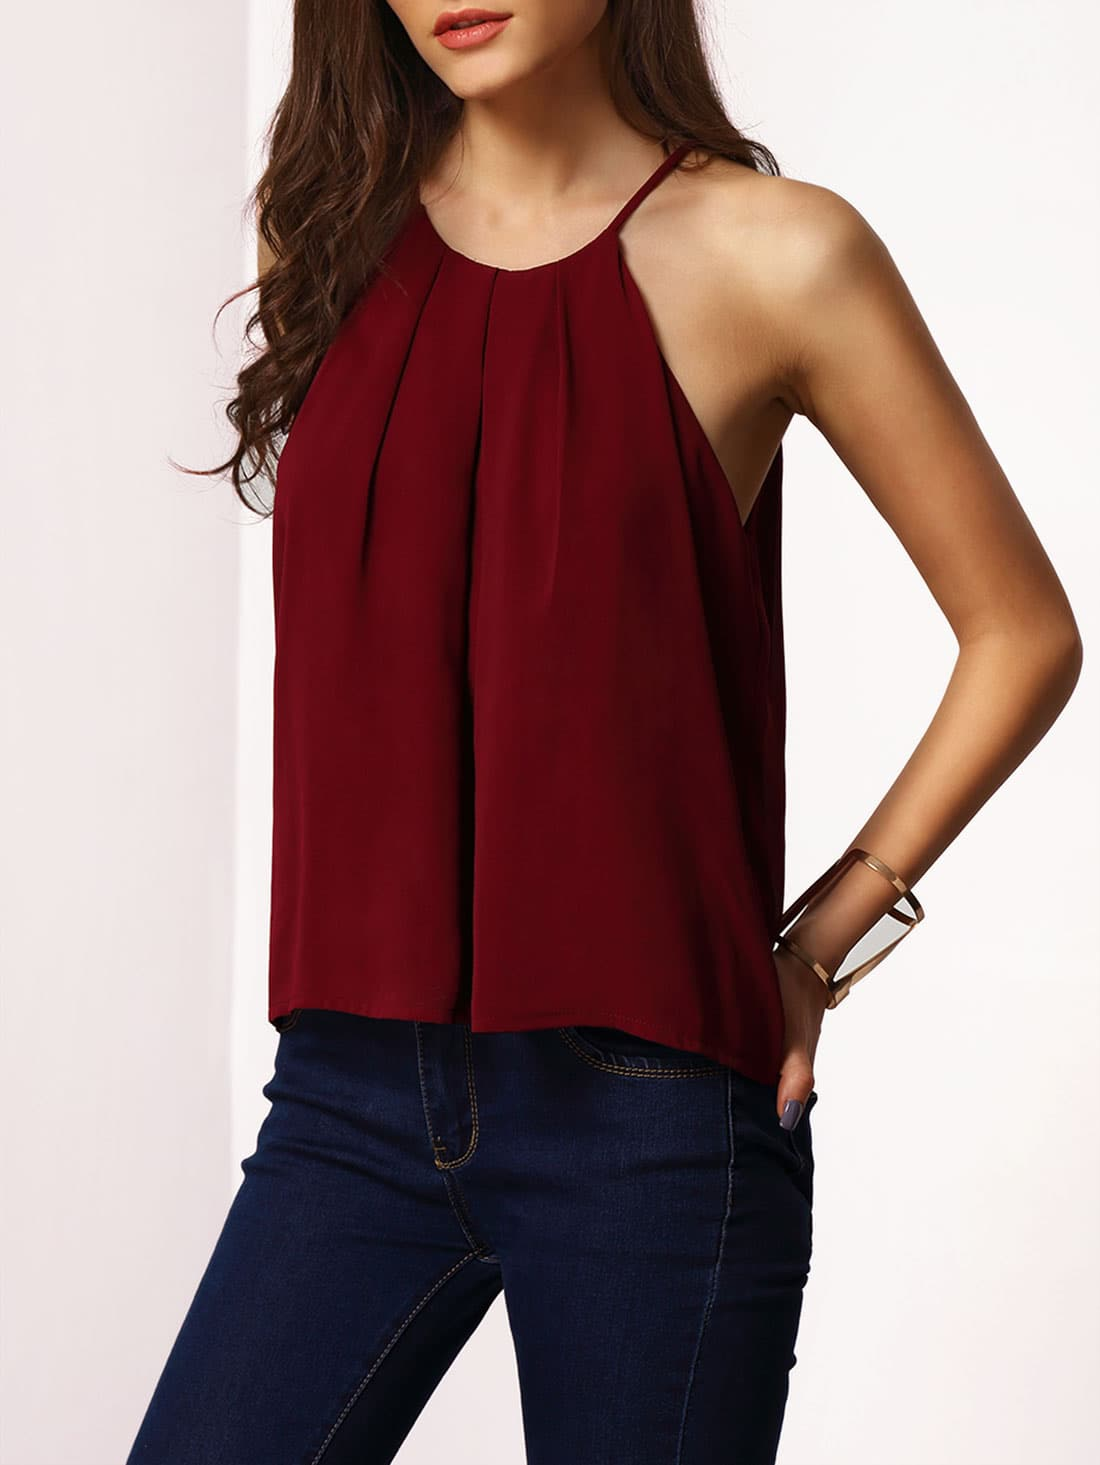 Burgundy Striped Crop Cami Top % QUICK VIEW + Burgundy Spaghetti Strap Lace-up Cami Top. out of stock. Burgundy Spaghetti Strap Lace-up Cami Top % QUICK VIEW + Burgundy Velvet Overlap Top With Choker. out of stock. Burgundy Velvet Overlap Top With Choker %.